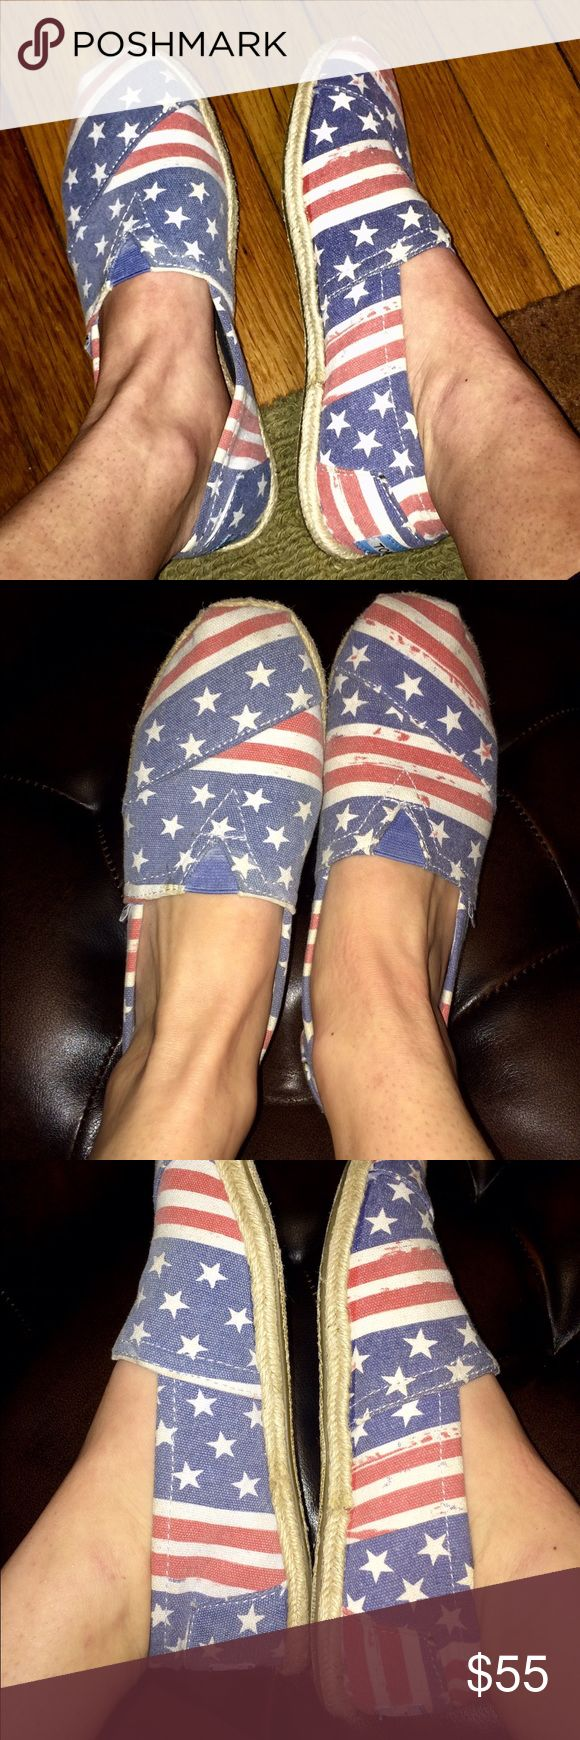 🇺🇸American Flag TOMS -- size 7 Great condition + unique 'American flag themed' TOMS in size 7. Shoes gave only been worn a few times, comfortable, patriotic and fashionable! TOMS Shoes Flats & Loafers